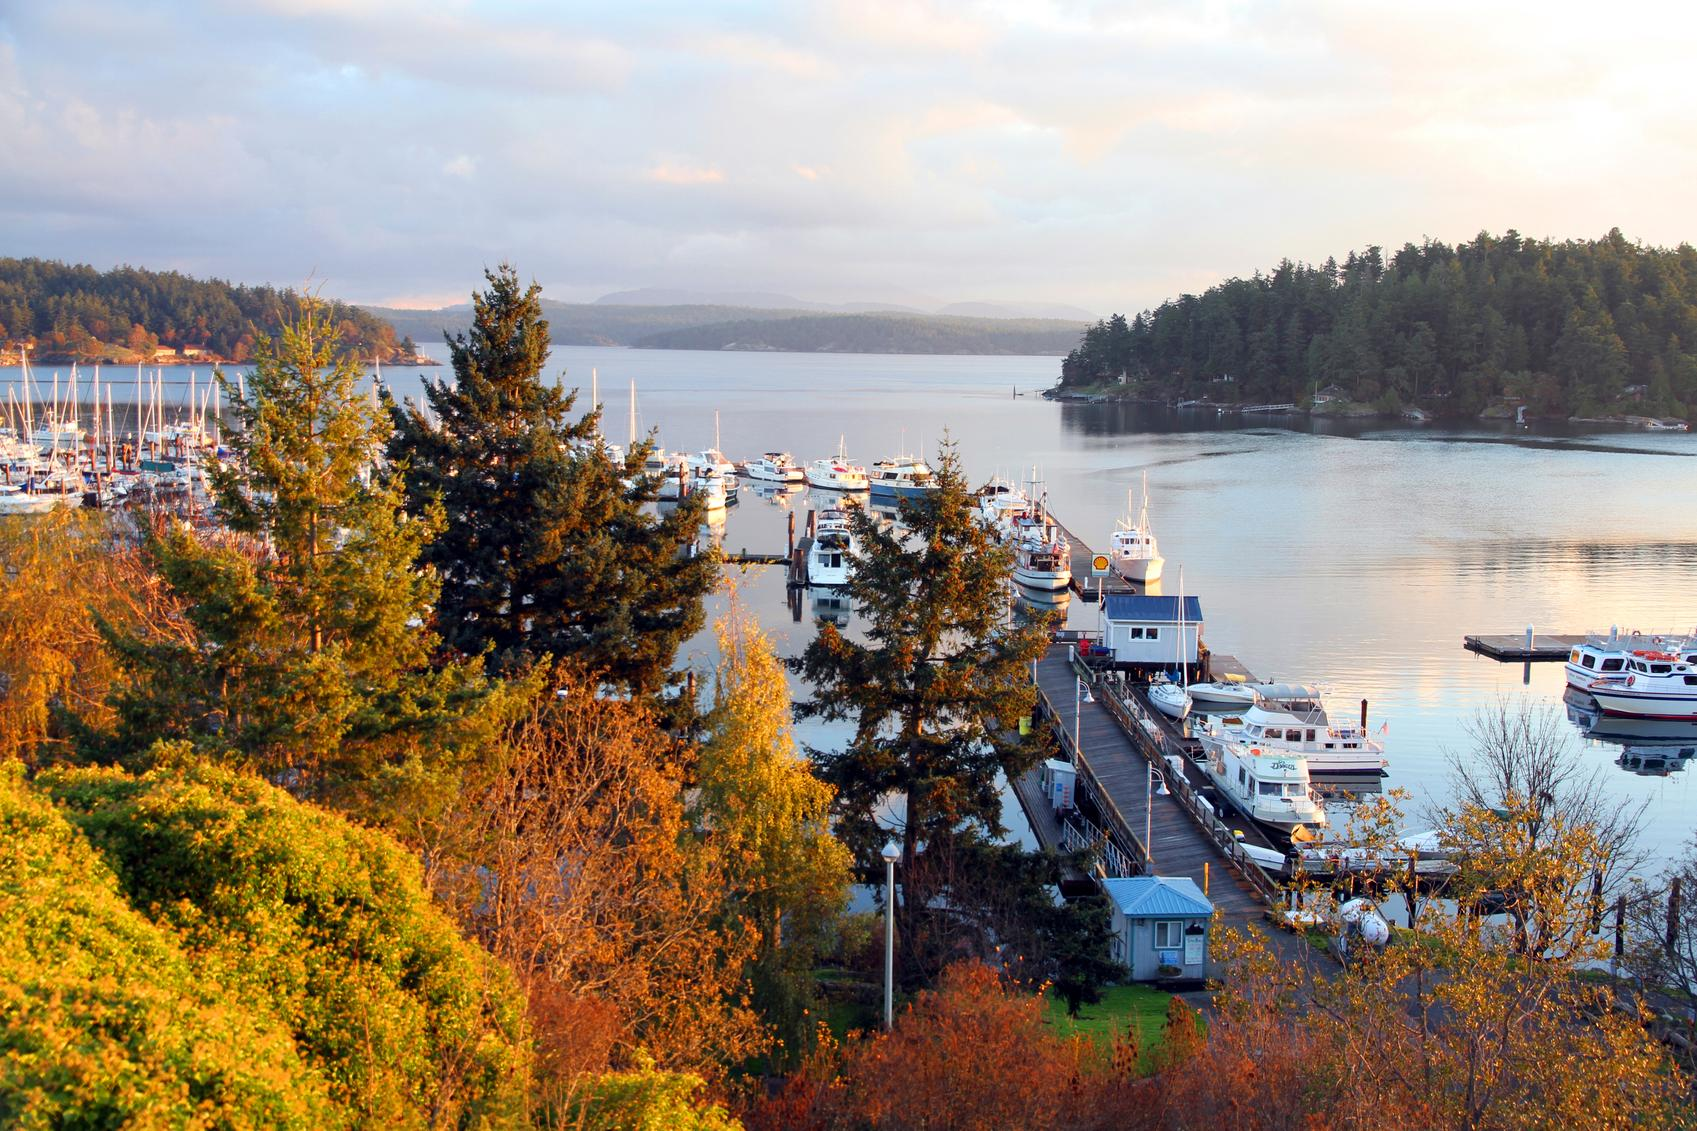 <p>Because it falls within the Olympic Rain Shadow, Friday Harbor on beautiful San Juan Island offers sun and warmer weather all the way into October.</p>